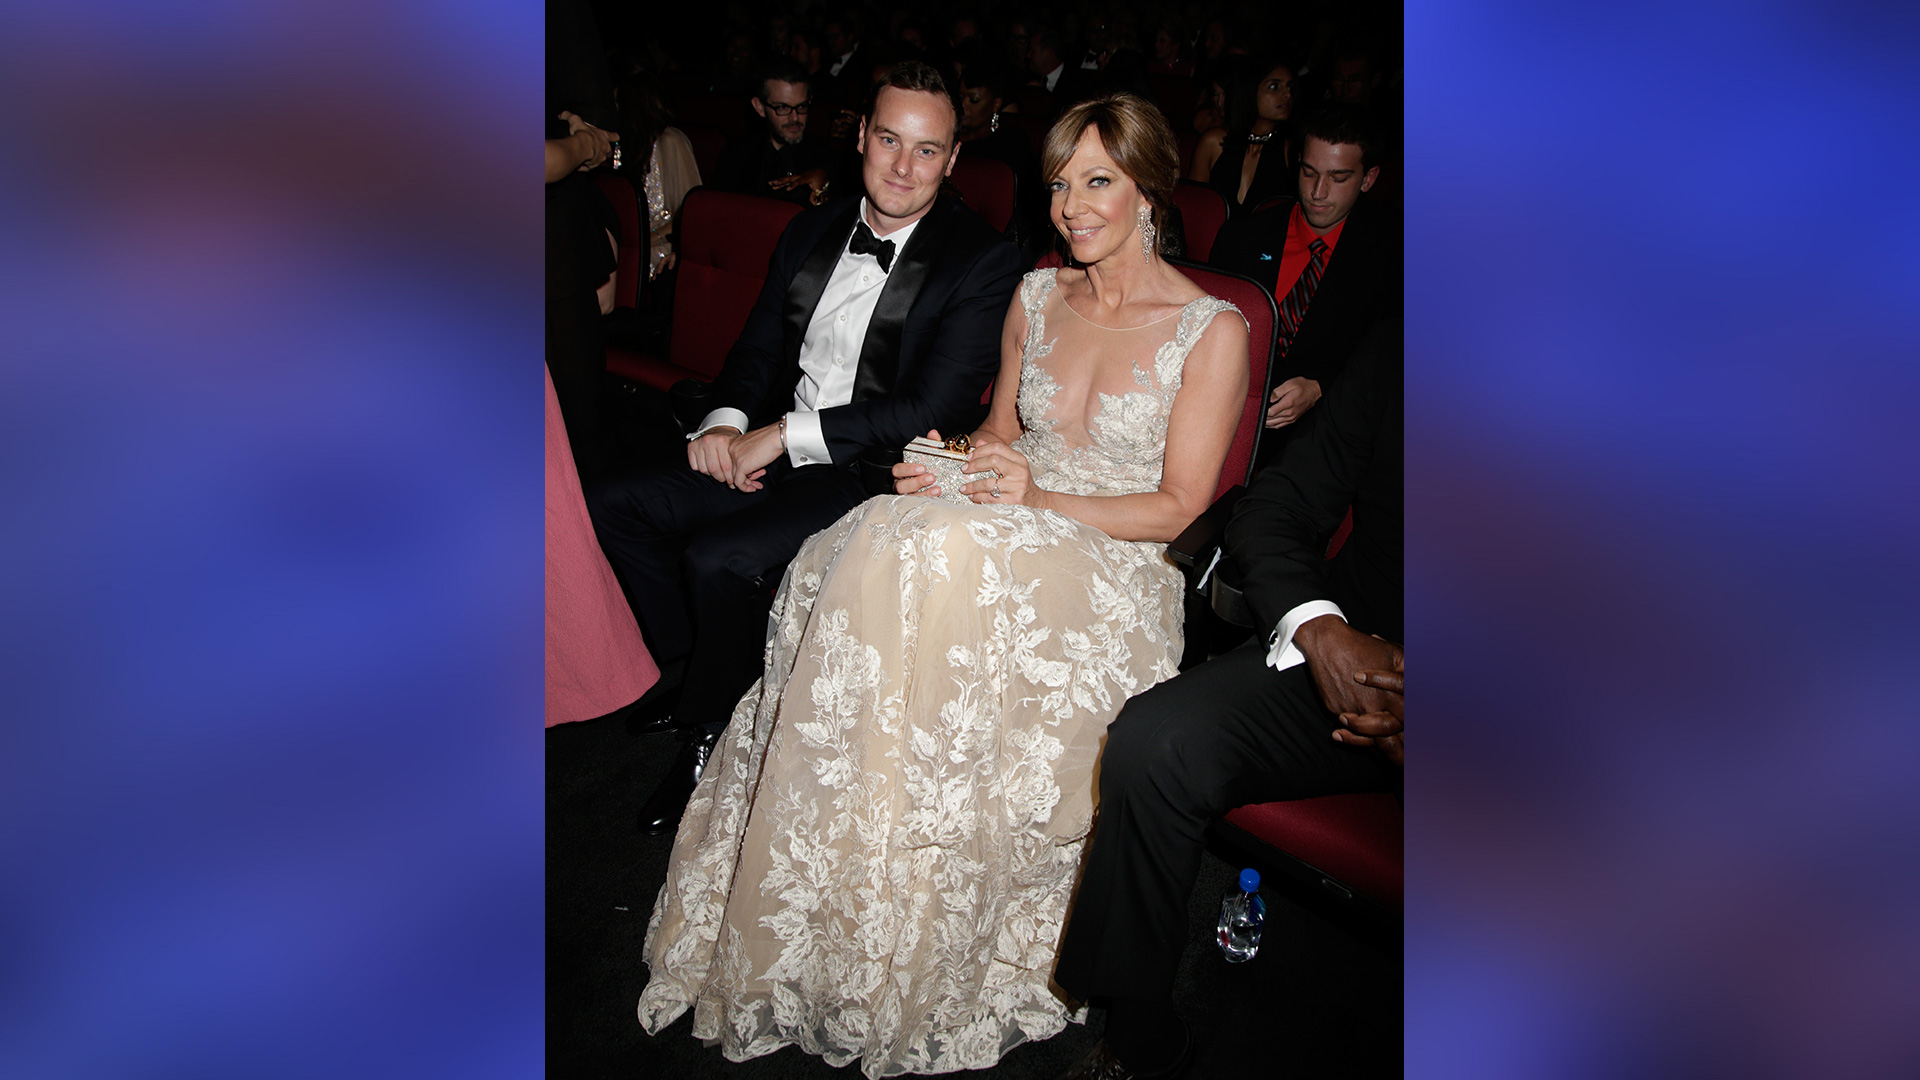 Allison Janney and her gorgeous gown demand attention while she sits in the audience with her nephew.